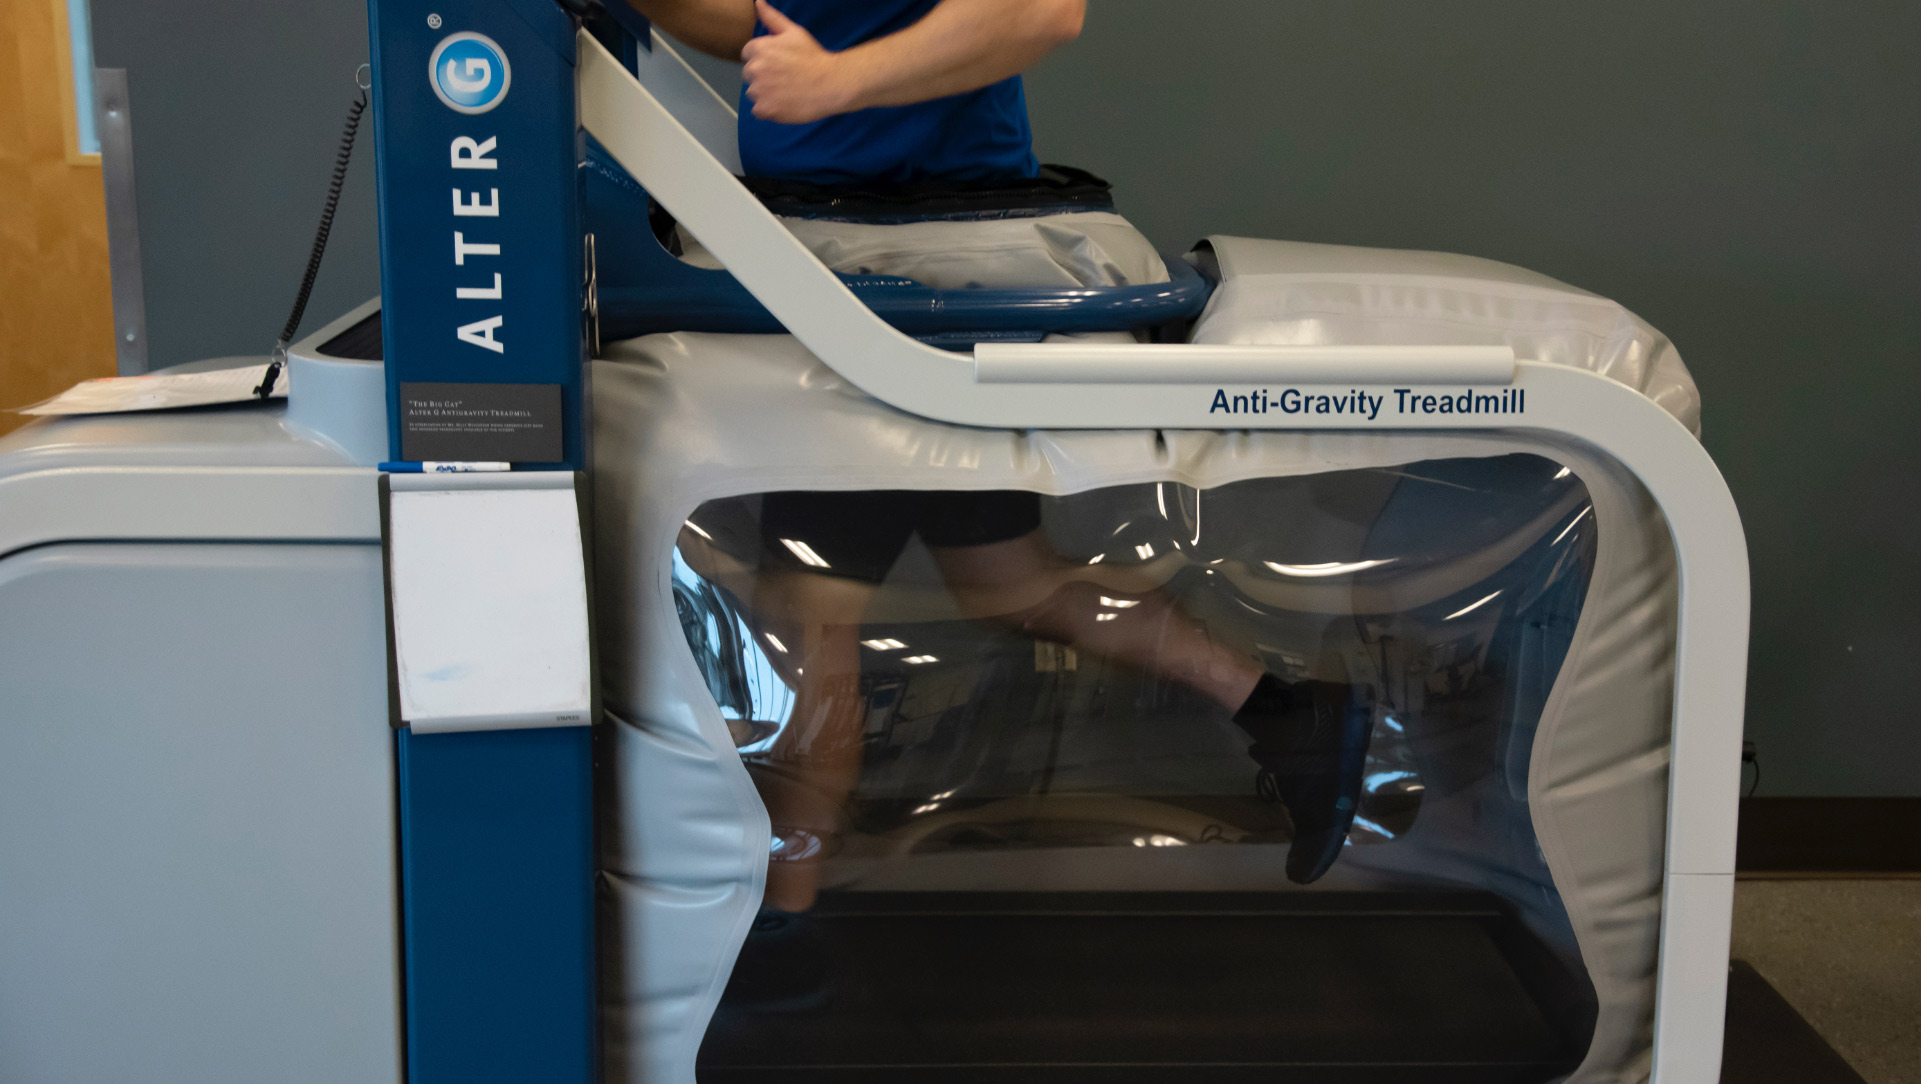 A photo of a person using the anti-gravity treadmill machine—the machine is built as a standard treadmill with gray plastic around the bottom half where the patient runs.